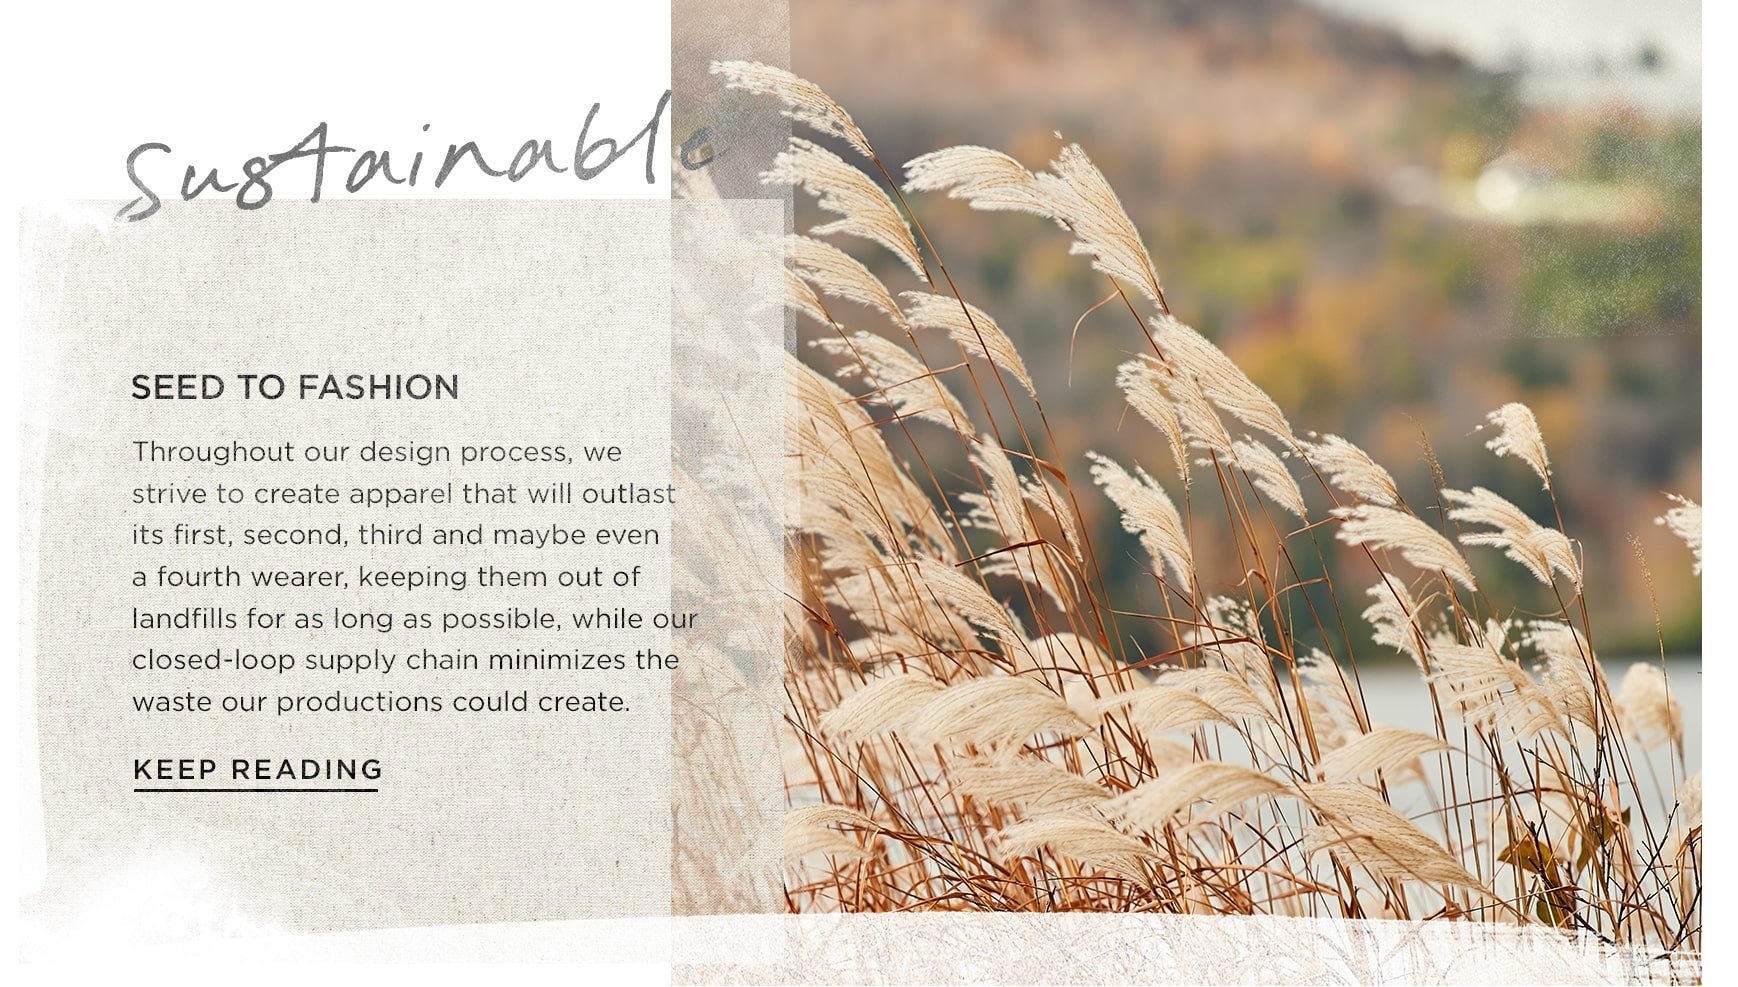 Seed to fashion: minimizing waste in production.